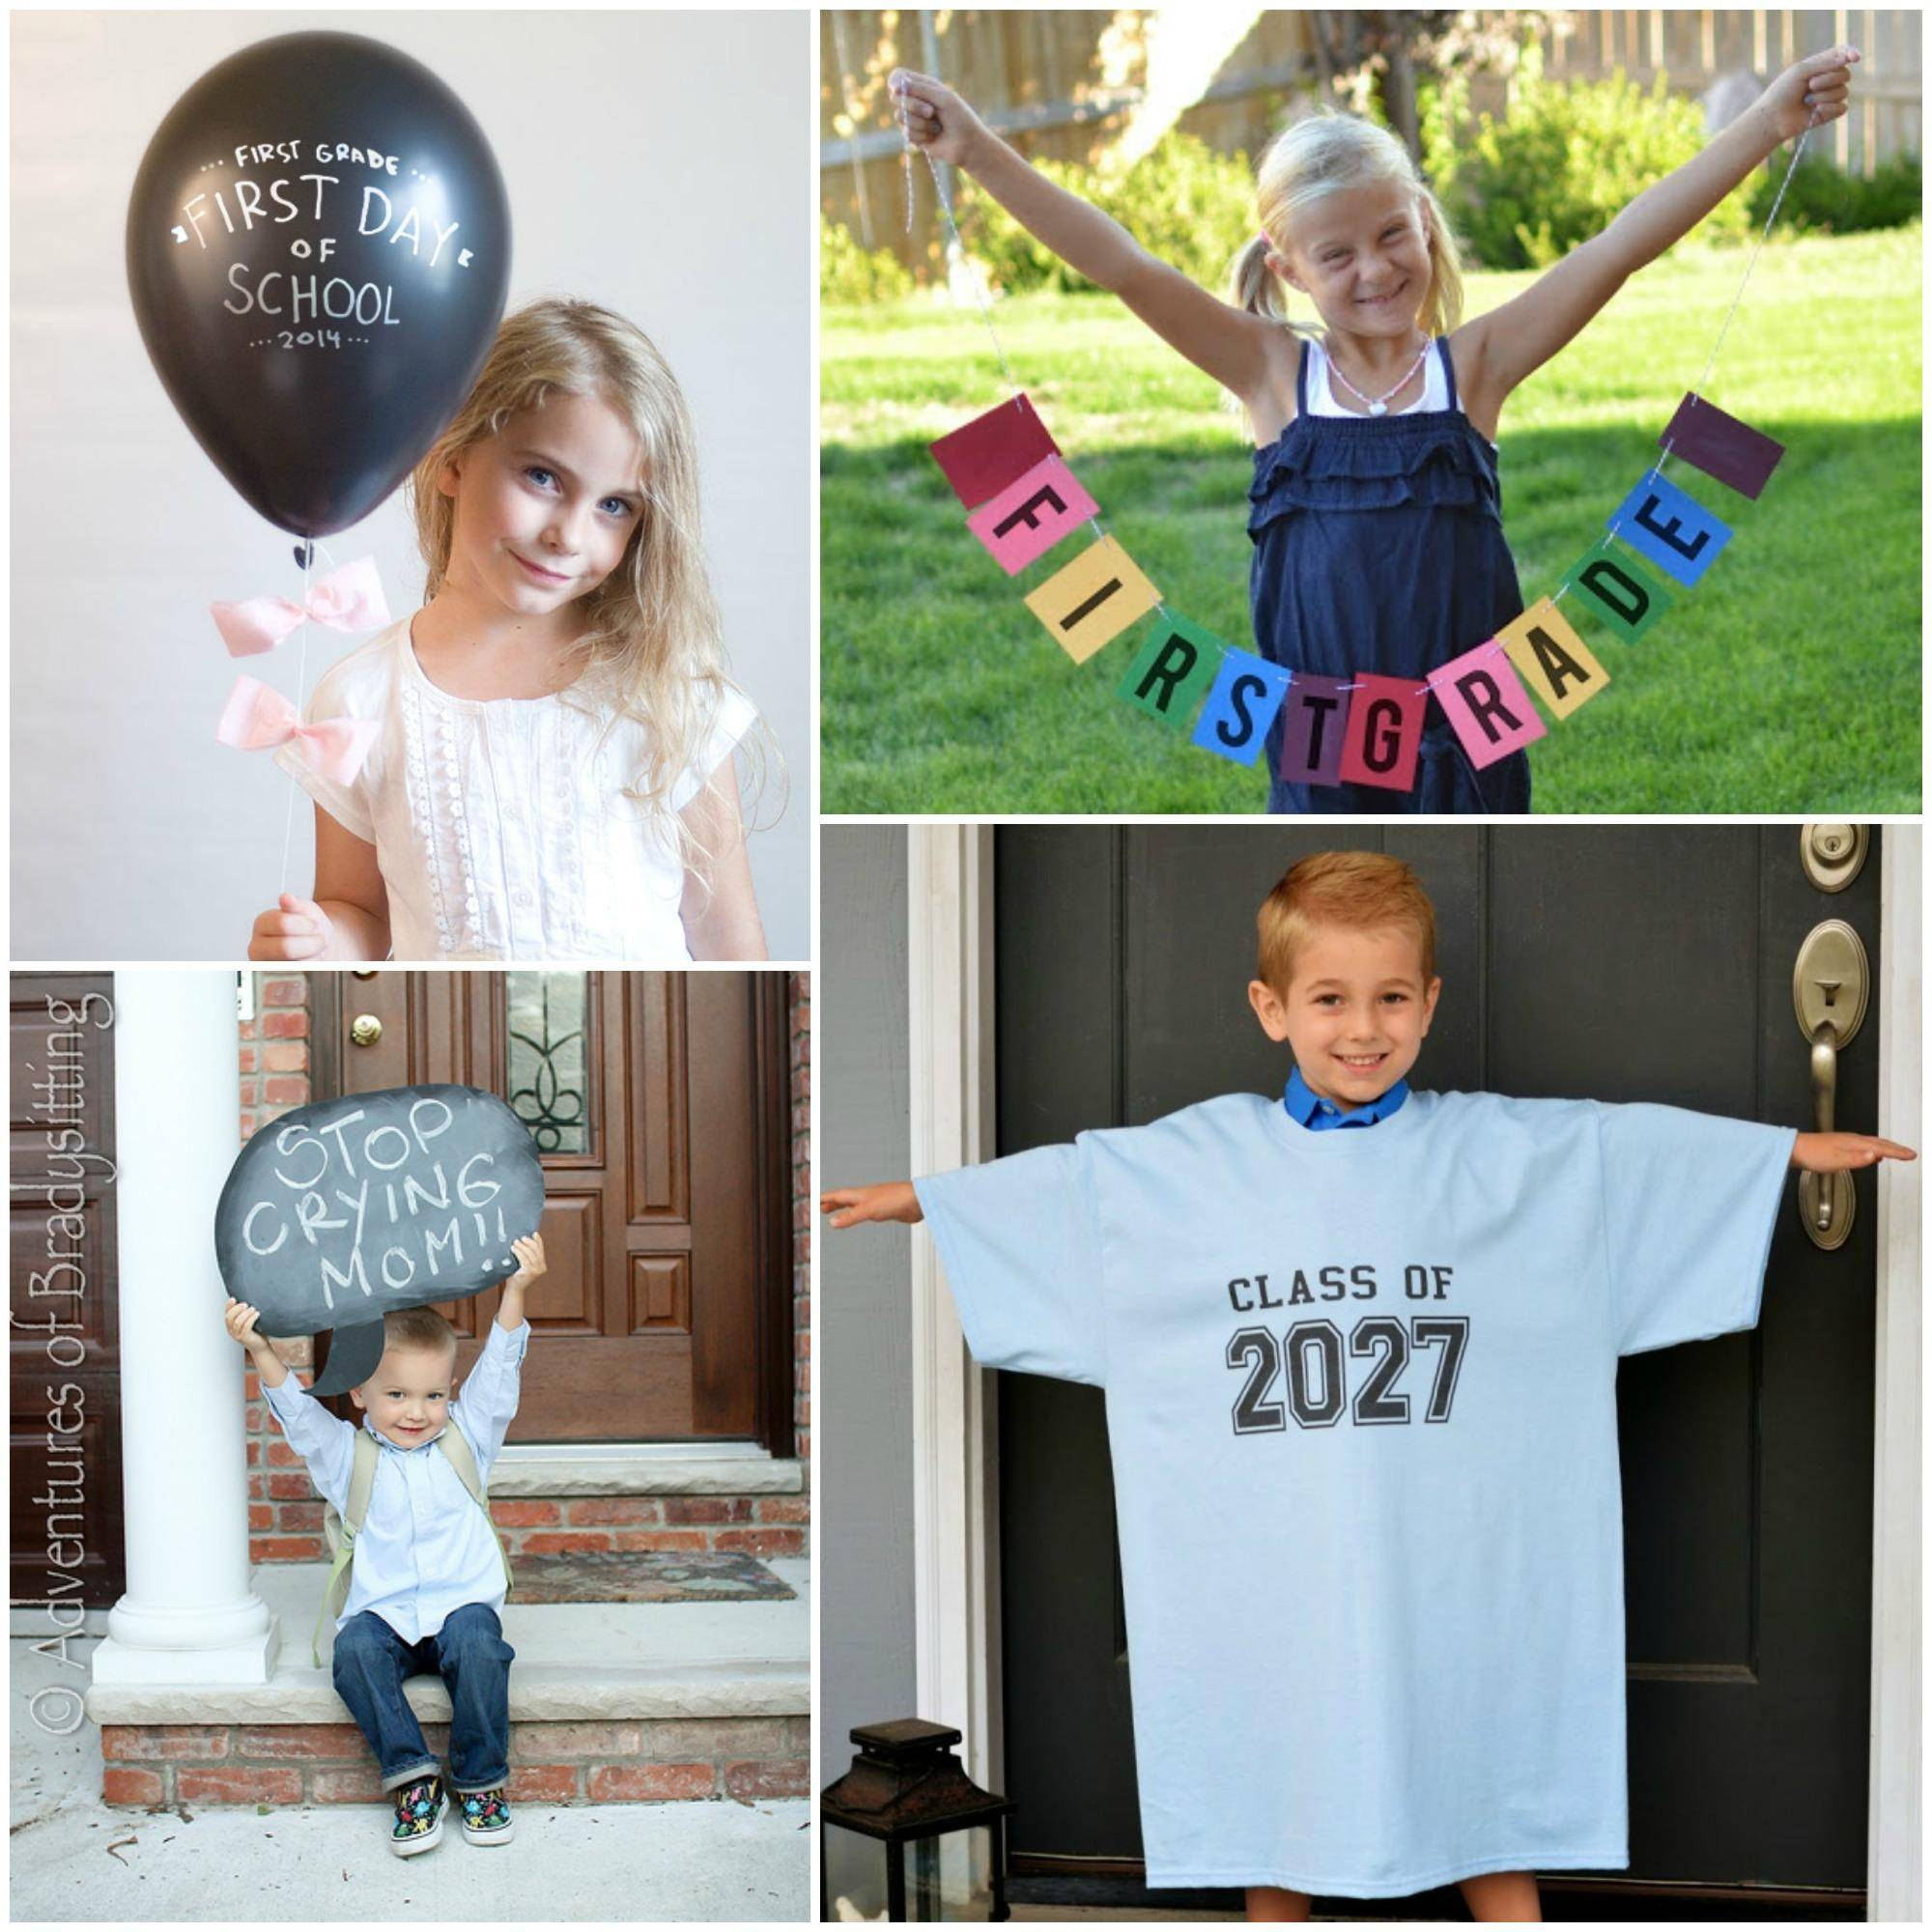 First Day of School Photo Ideas! First Photograph Date